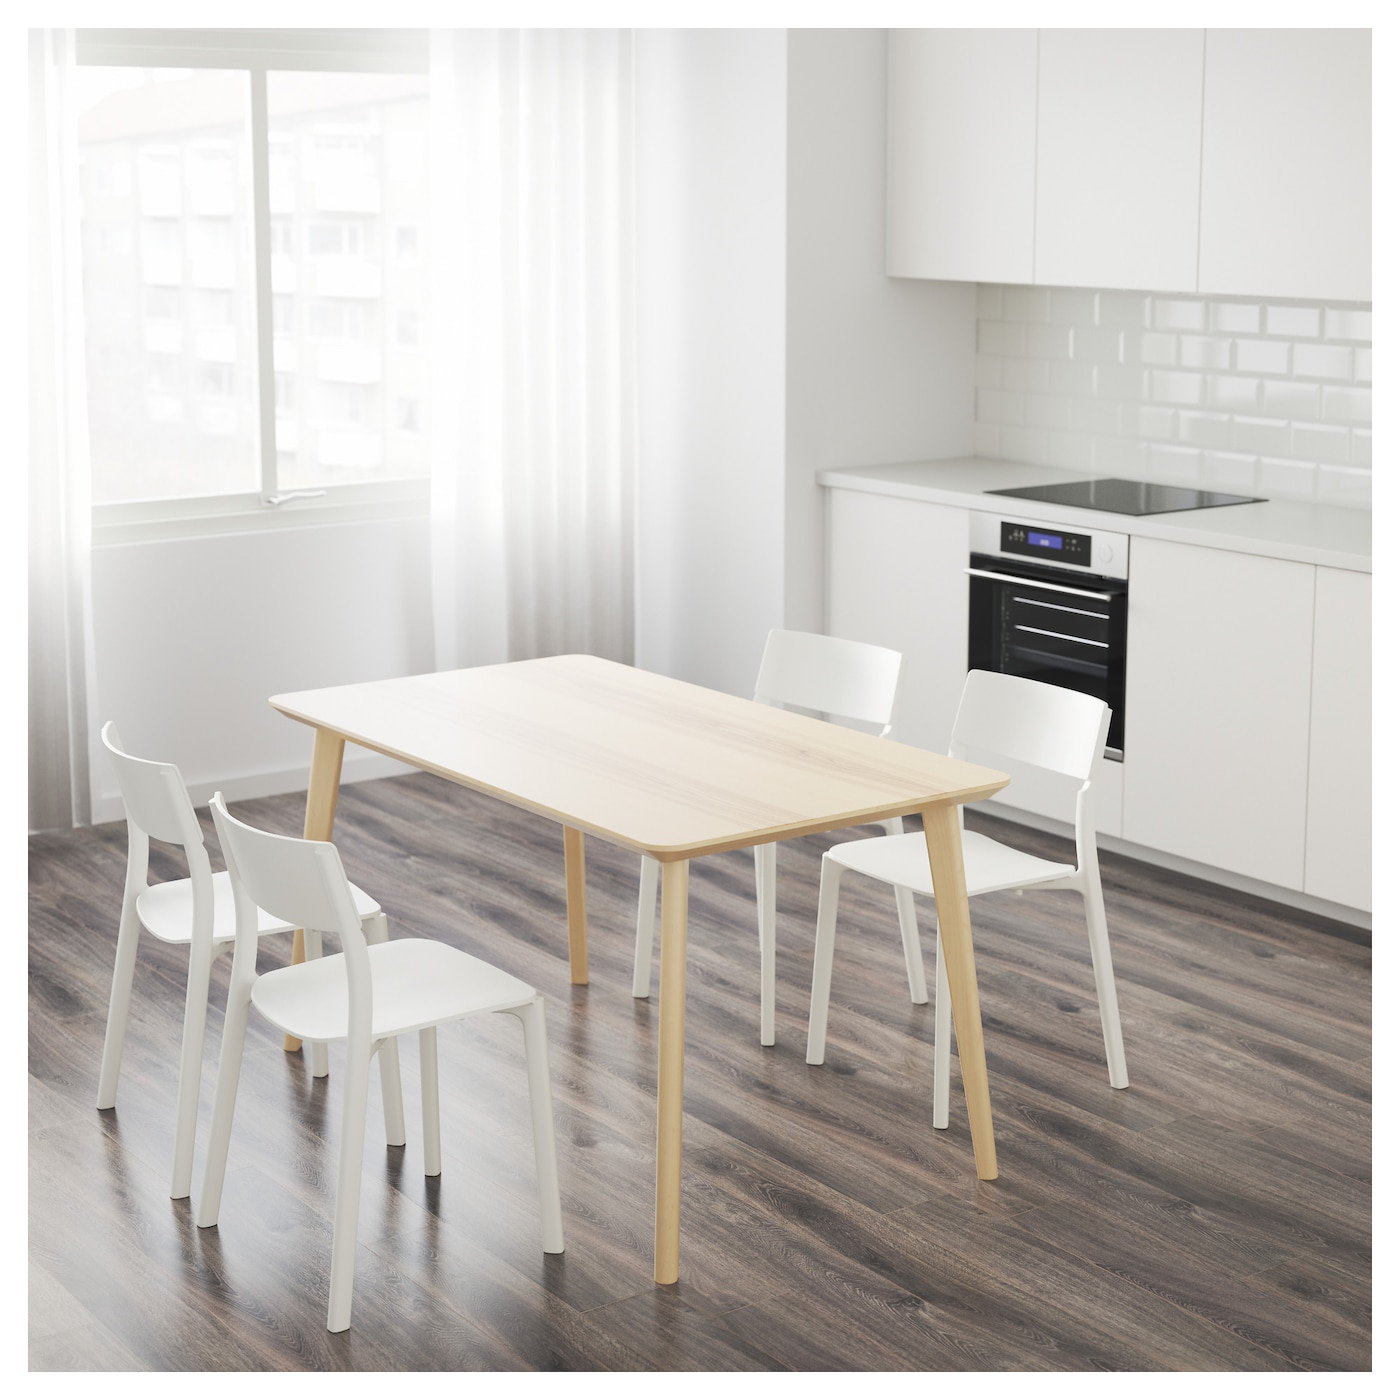 IKEA LISABO Table Easy To Assemble As Each Leg Has Only One Fitting